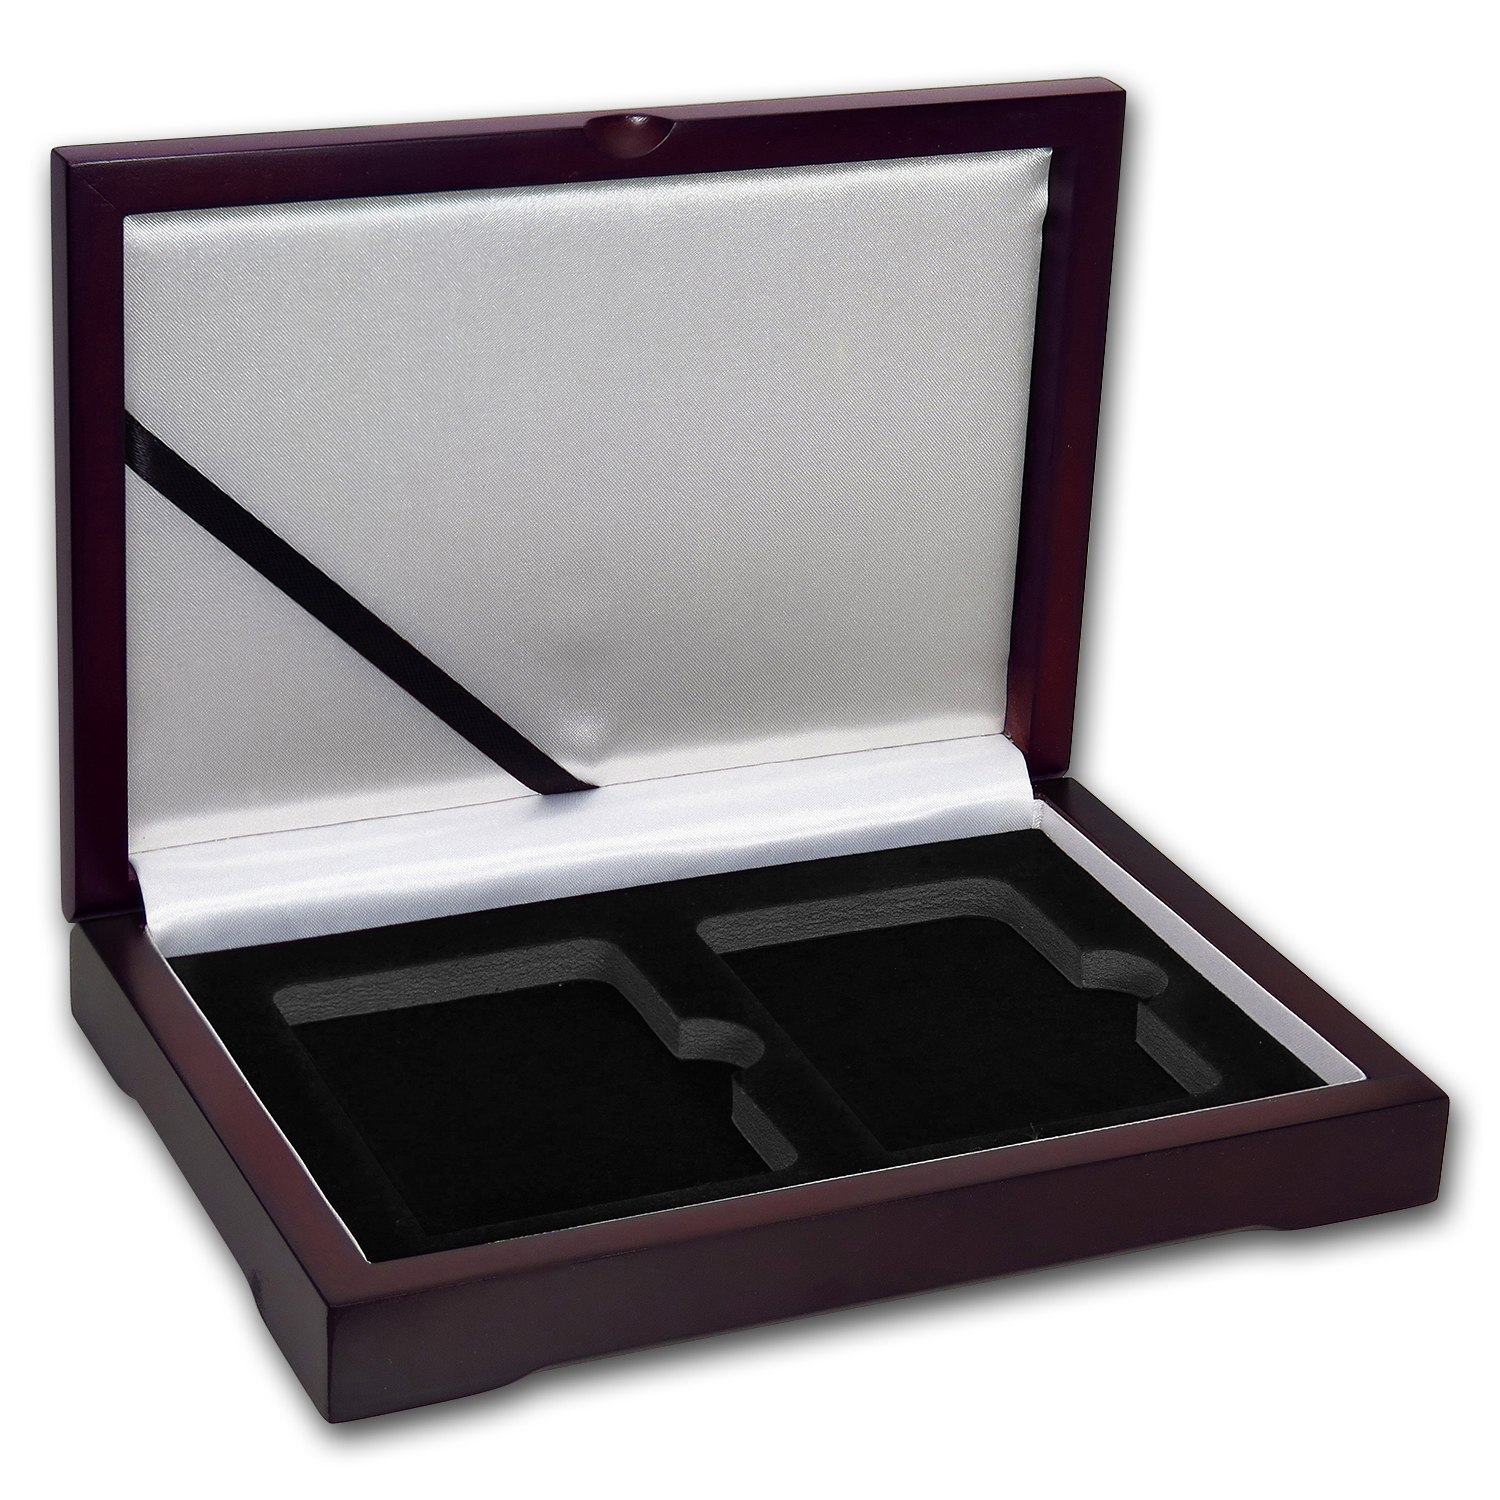 Wooden Slab Gift Box - Two Slab